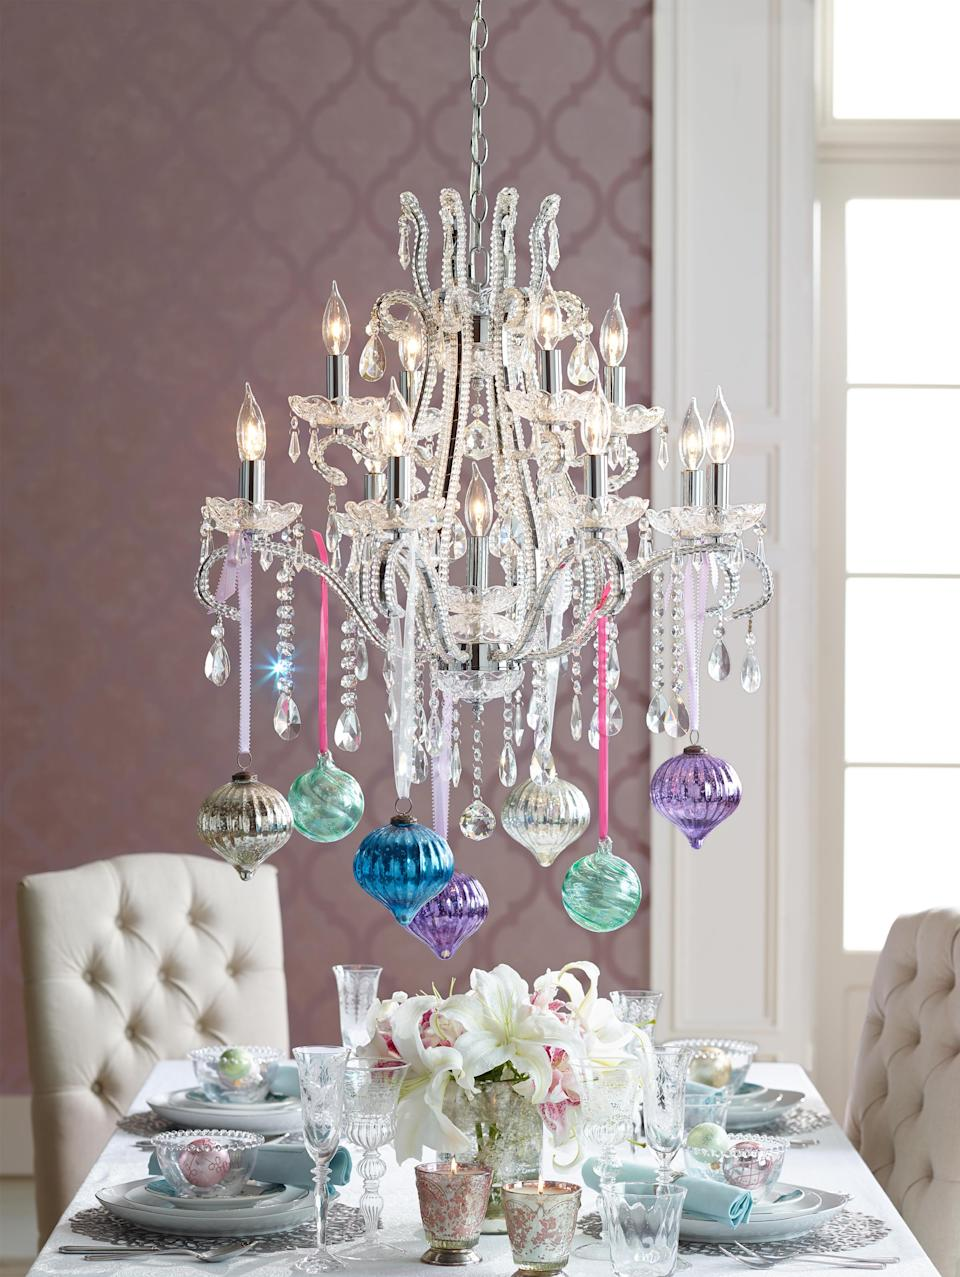 """<p>Lean into eye-catching candy colors this New Year, employing <a rel=""""nofollow noopener"""" href=""""http://www.elledecor.com/life-culture/travel/a12013170/travel-destinations-for-pastel-lovers/"""" target=""""_blank"""" data-ylk=""""slk:pastel"""" class=""""link rapid-noclick-resp"""">pastel</a> purples and robin's egg blue to liven up your festivities. Paired with pretty blush and taupe neutrals, this unexpected color scheme will kick your year off right. </p>"""